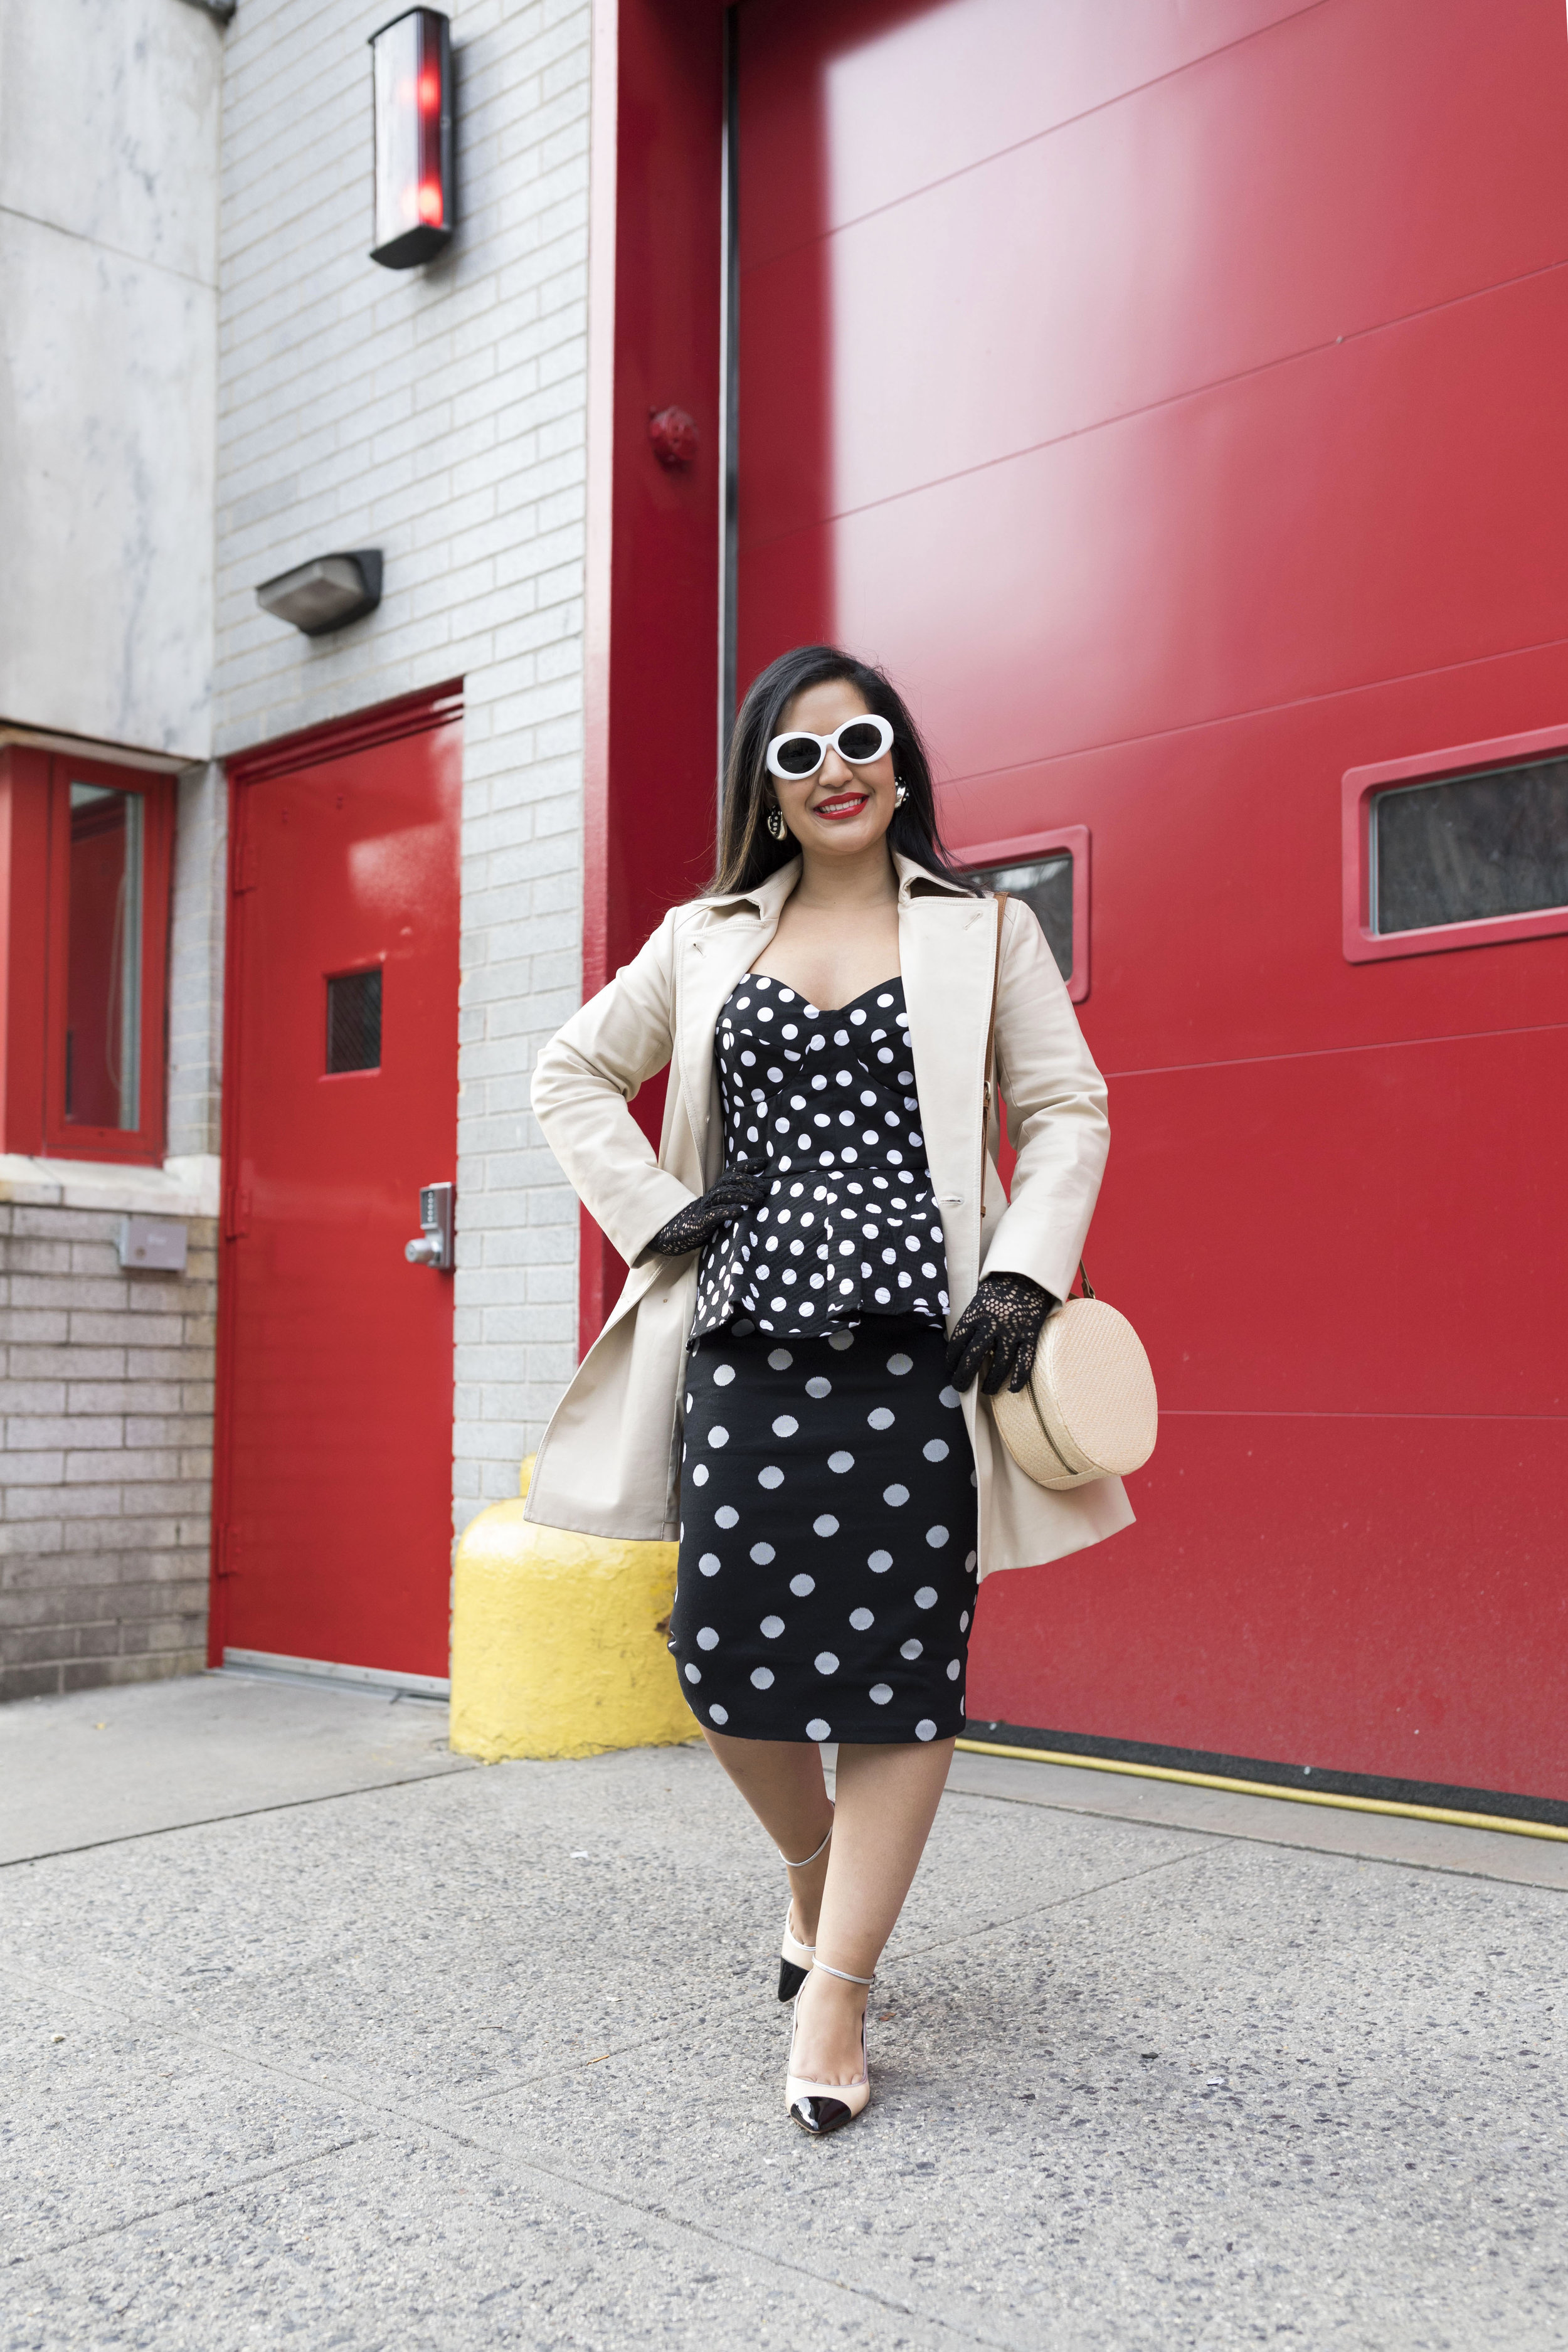 Krity S x Polka Dots x Spring Outfit11.jpg